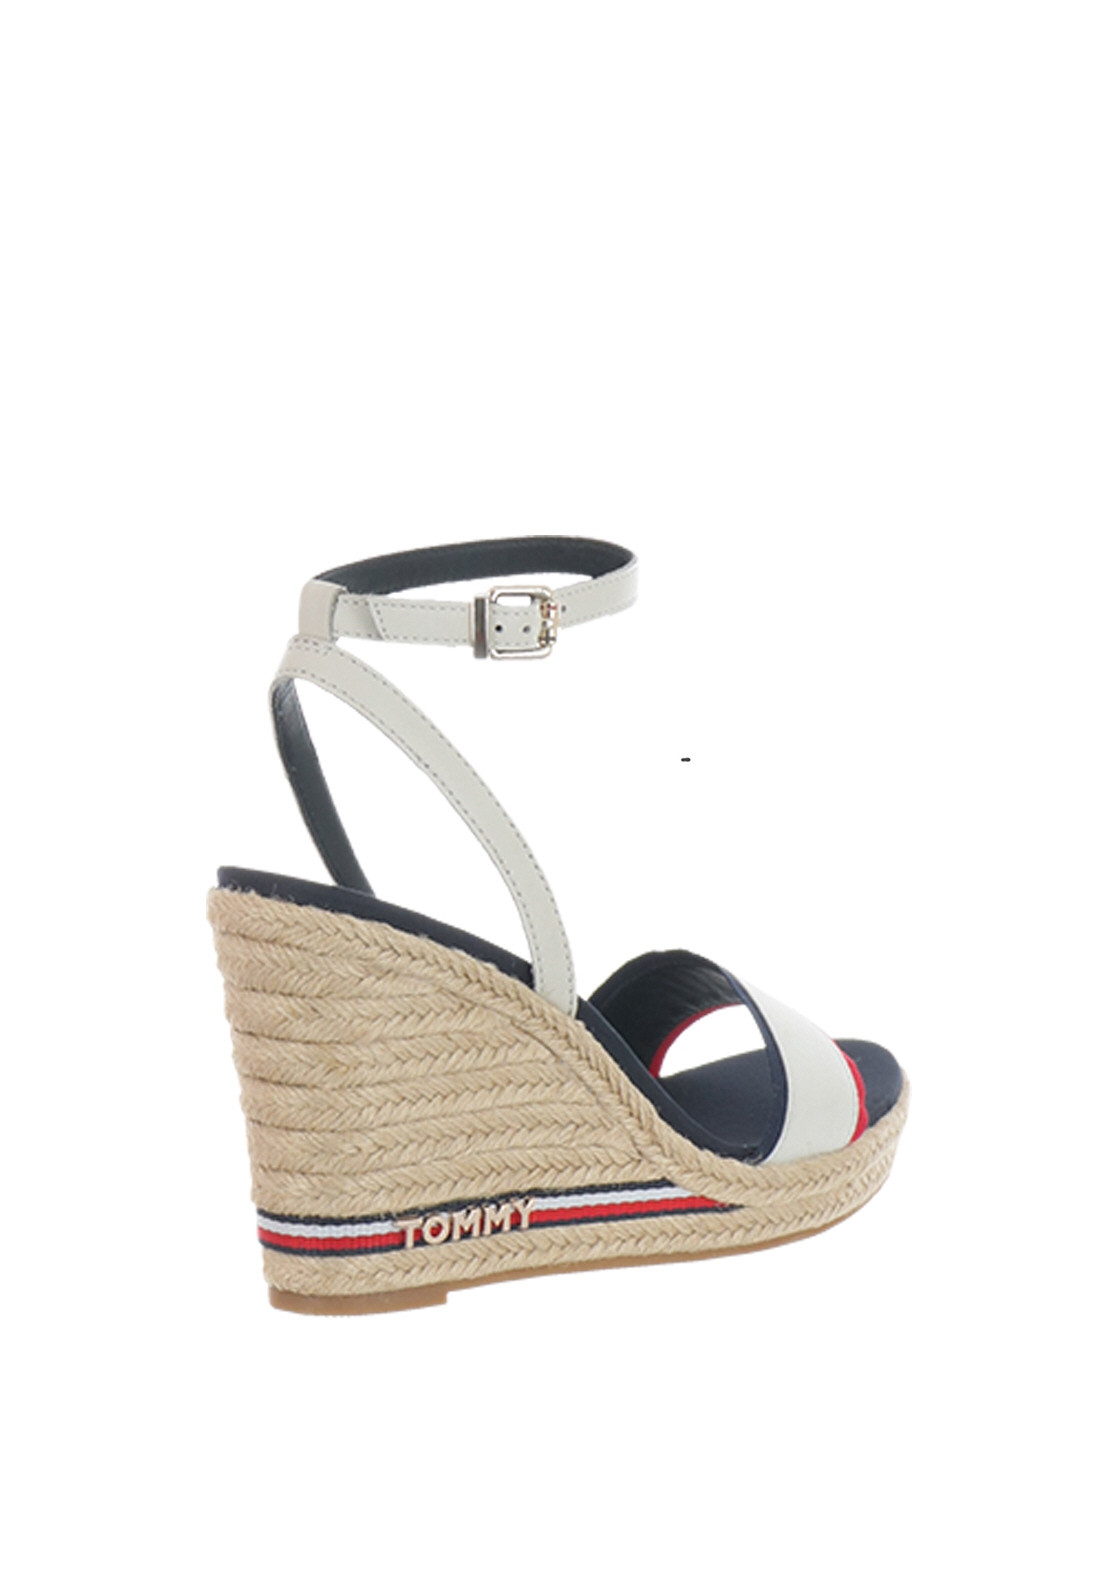 ca77db7006 Tommy Hilfiger Womens Elena Wedge Sandals, White Multi. Be the first to  review this product